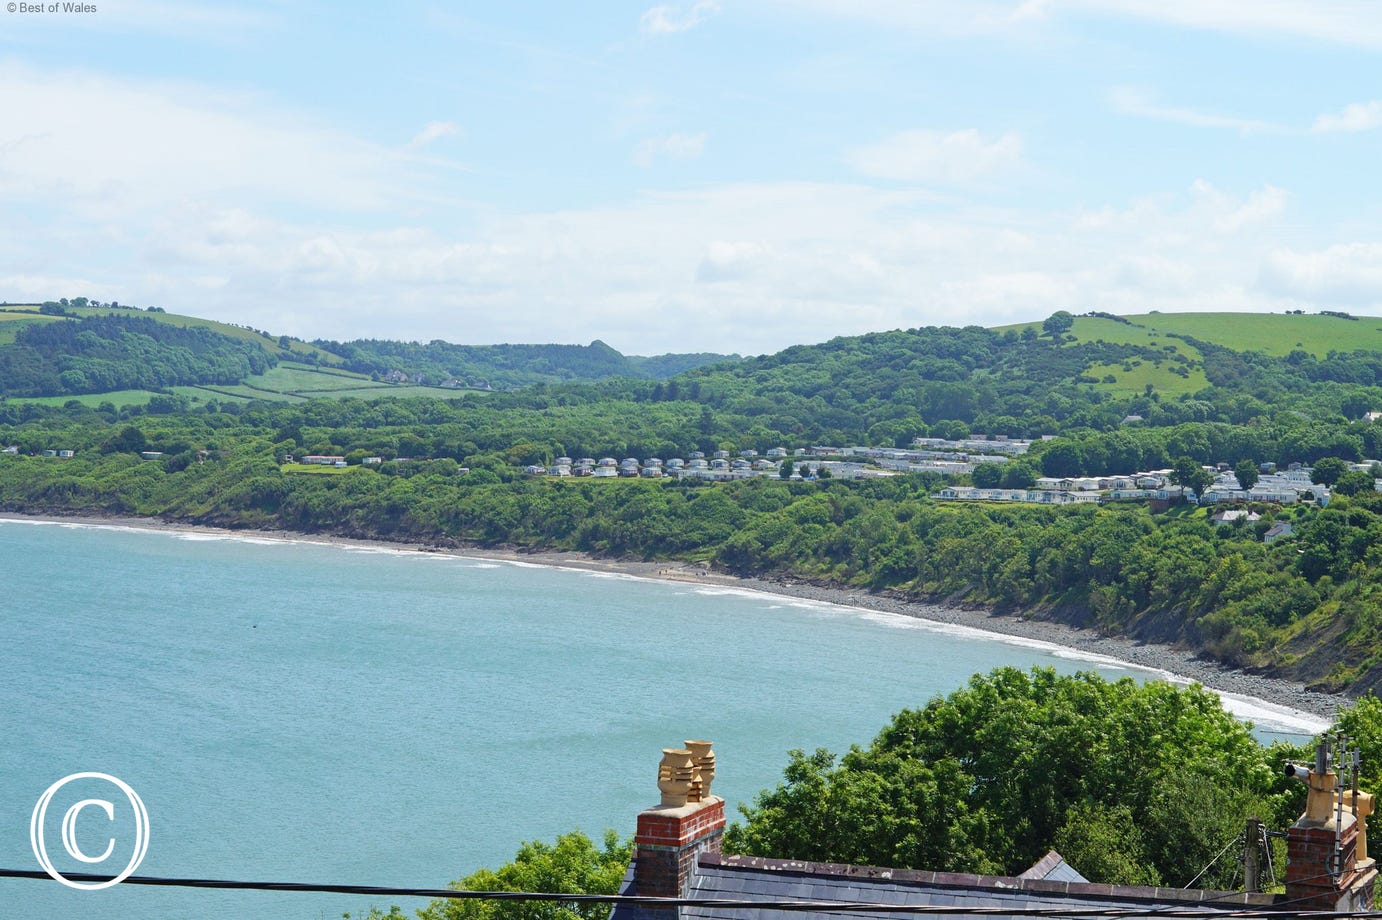 Seaside holiday home to rent - rooftop view from Rhianfa